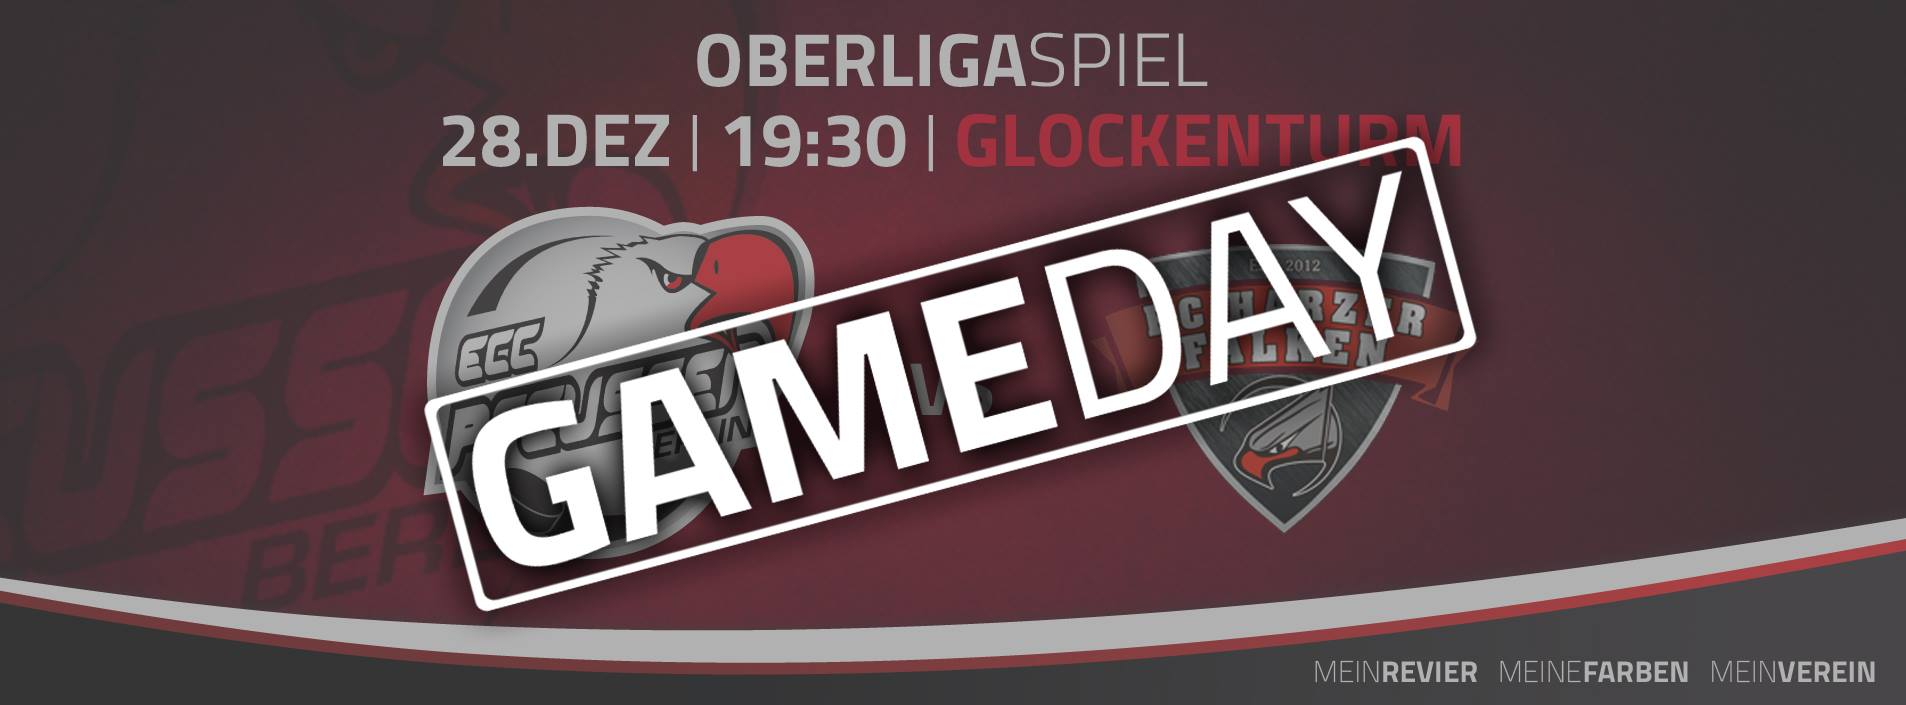 Gameday Harz.jpg